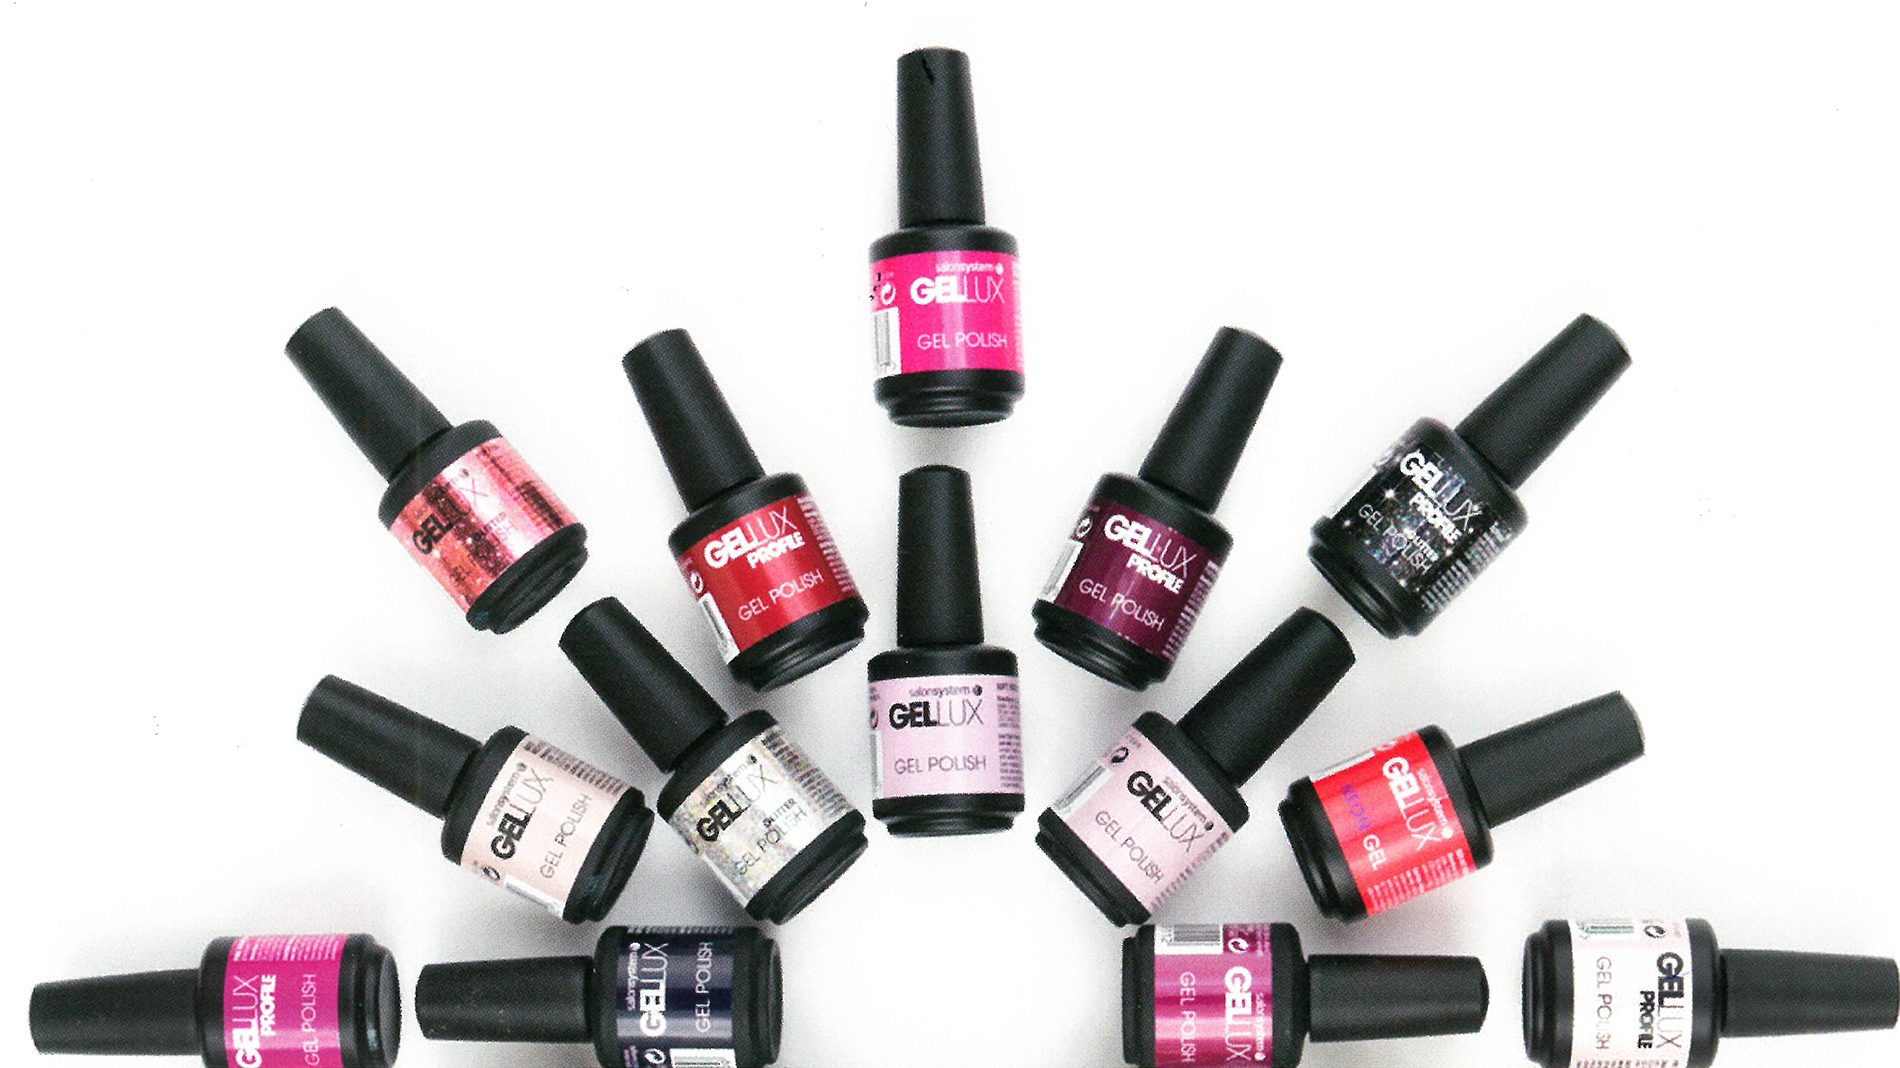 bottles of gellux nail polish by salon systems